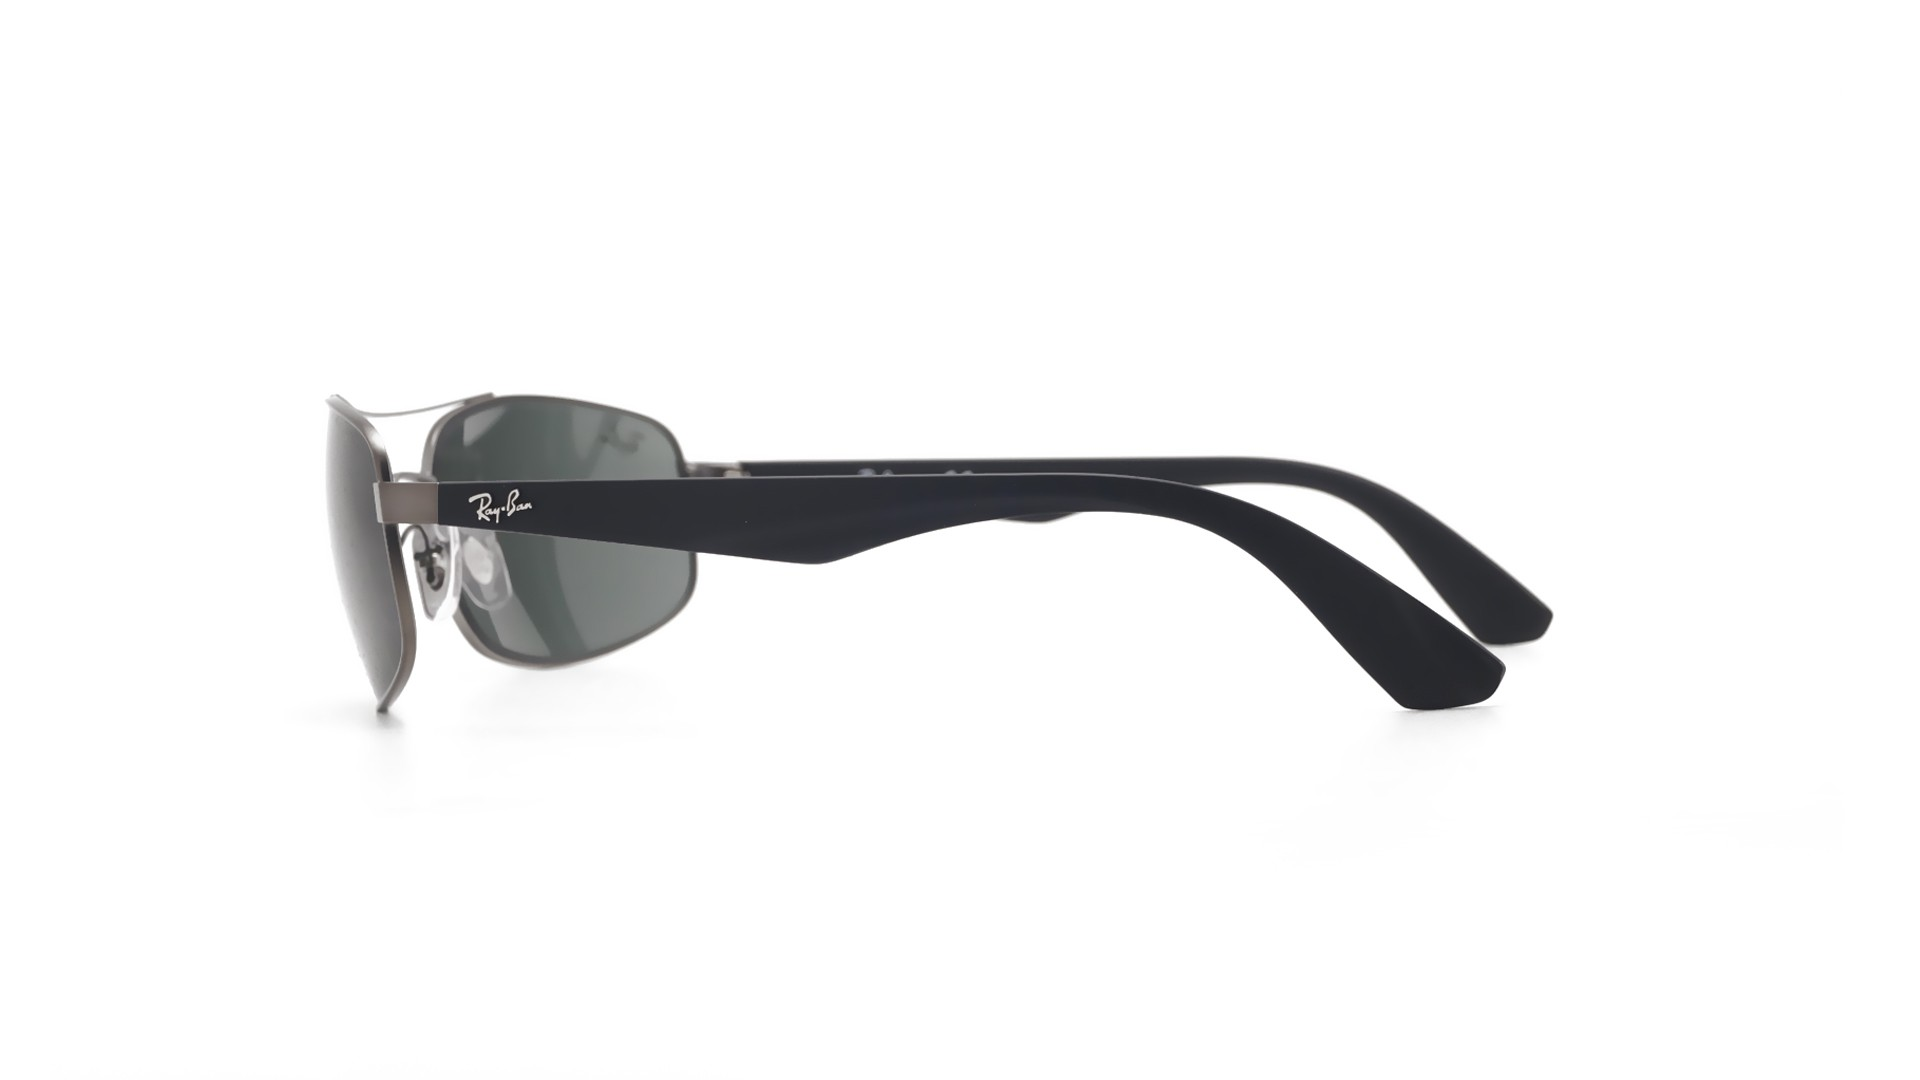 782cd585f0 Sunglasses Ray-Ban RB3527 029 71 61-17 Silver Matte Large. 3 reviews